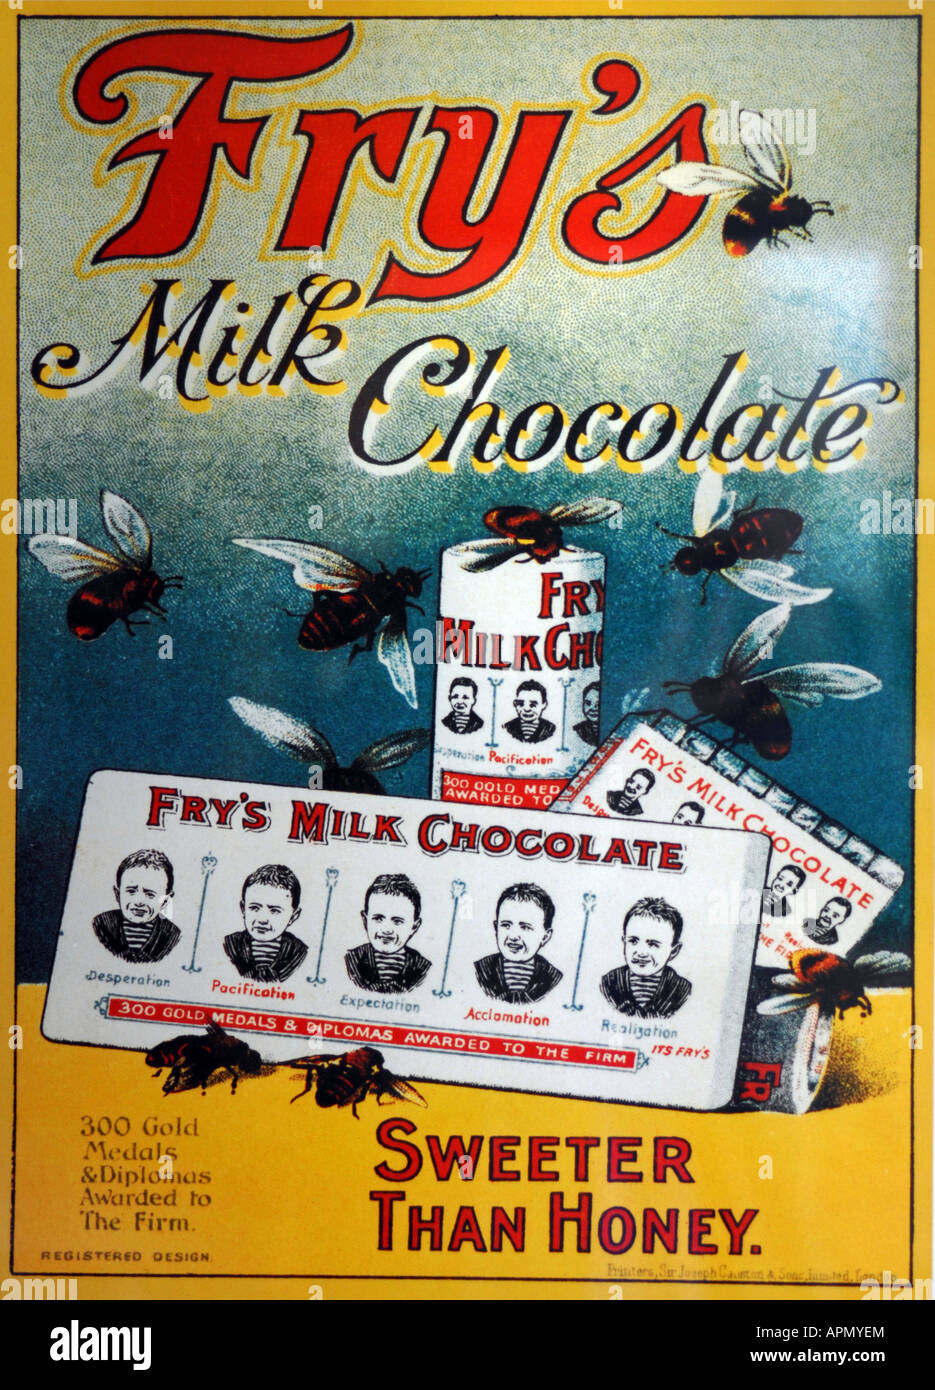 Old Fashioned Food Adverts